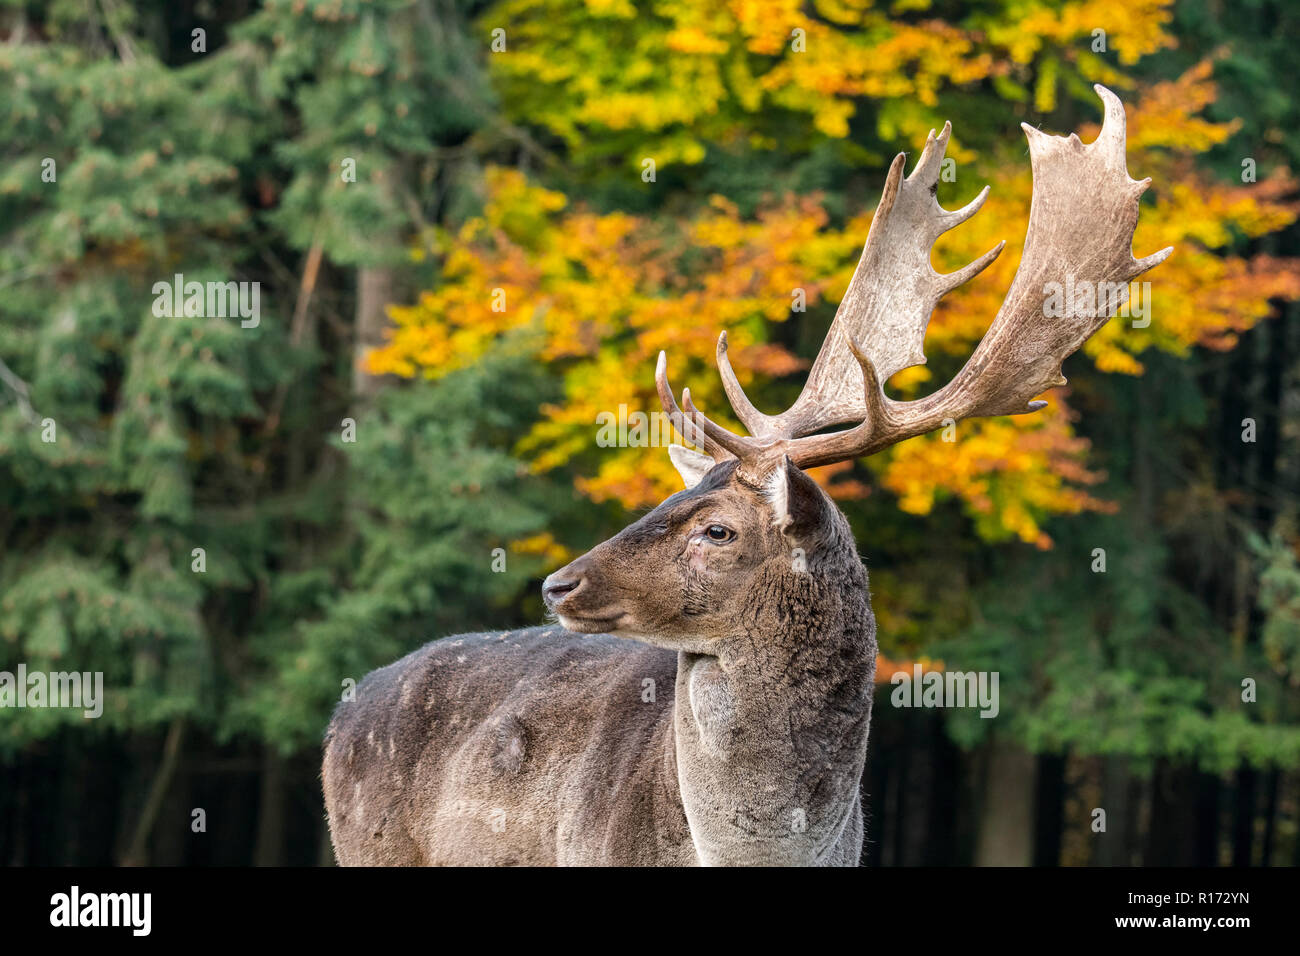 Close up portrait of fallow deer (Dama dama) buck / male with big antlers in autumn forest - Stock Image